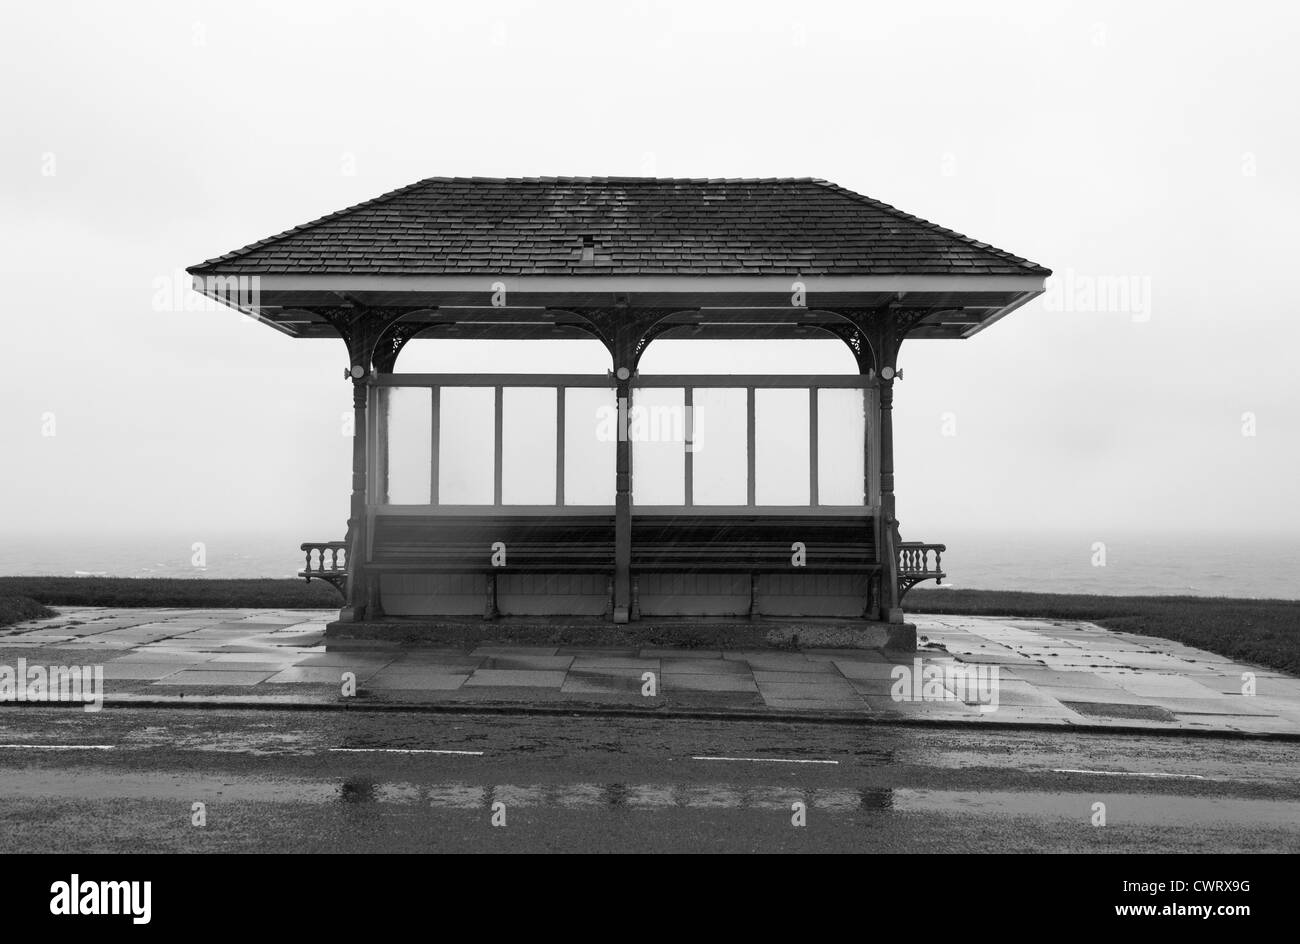 A Rainy day in Whitby, North Yorkshire. - Stock Image